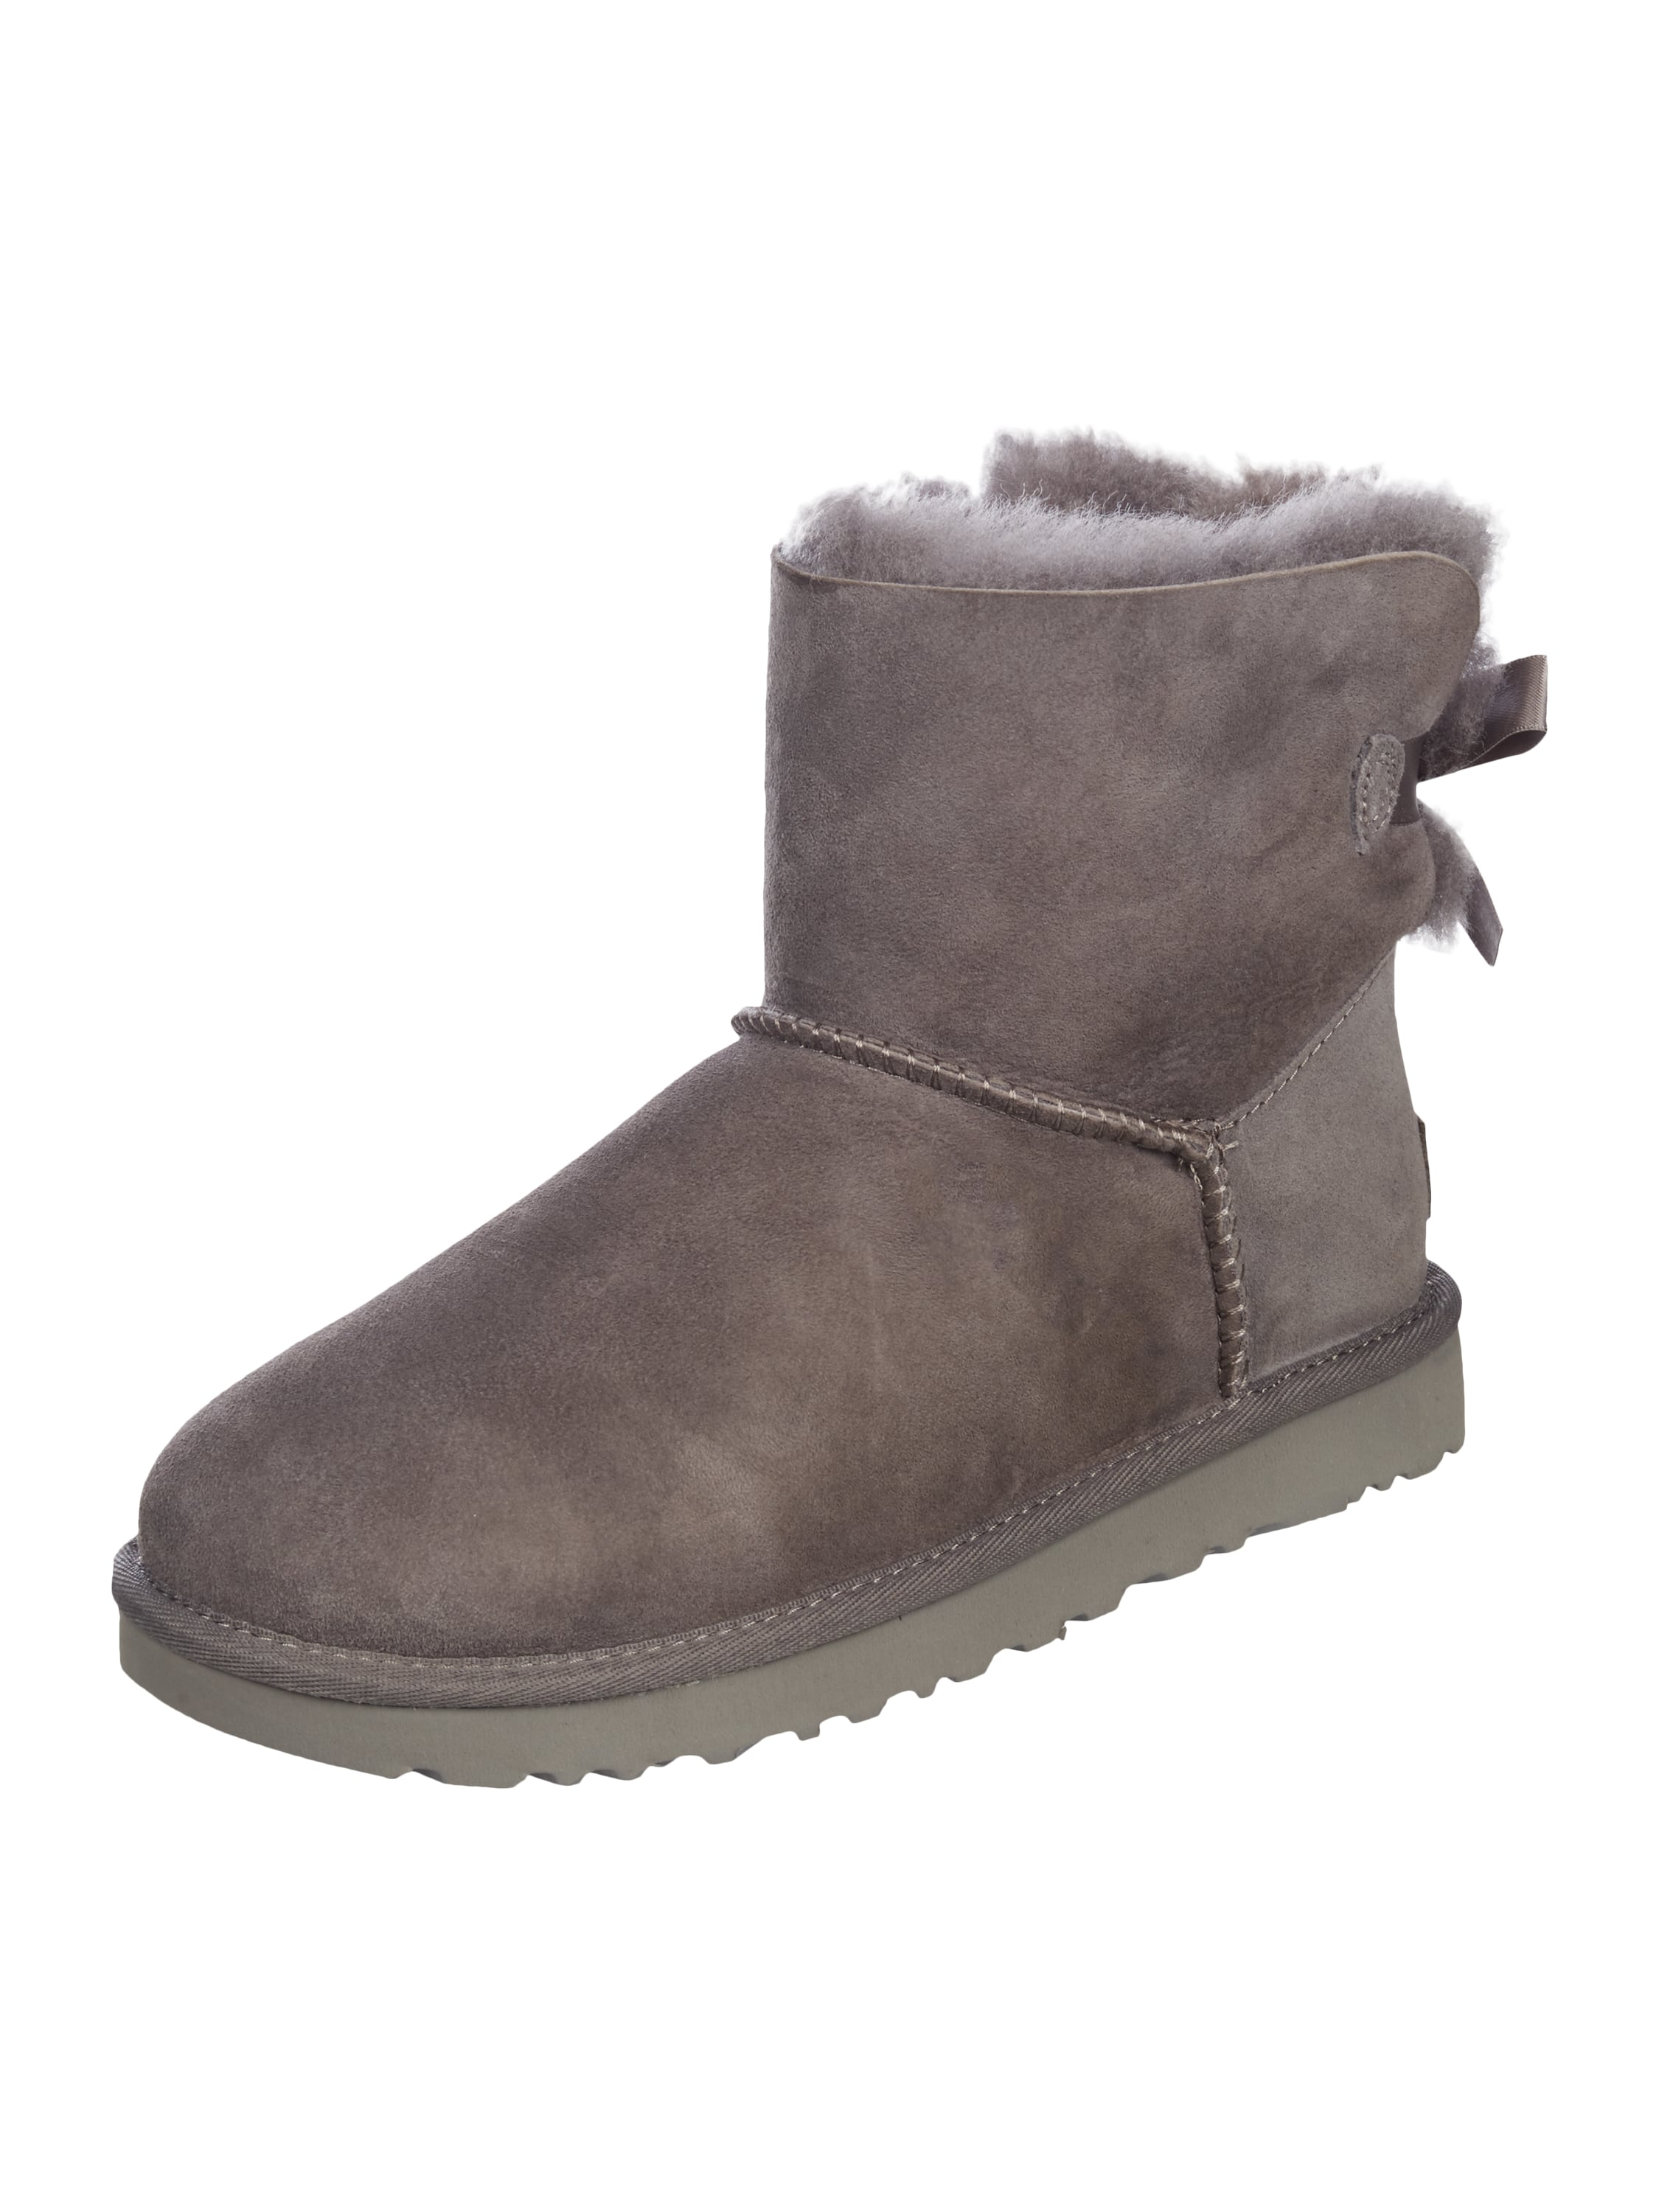 ugg boots outlet uk uggs outlet cheap uggs boots on sale. Black Bedroom Furniture Sets. Home Design Ideas